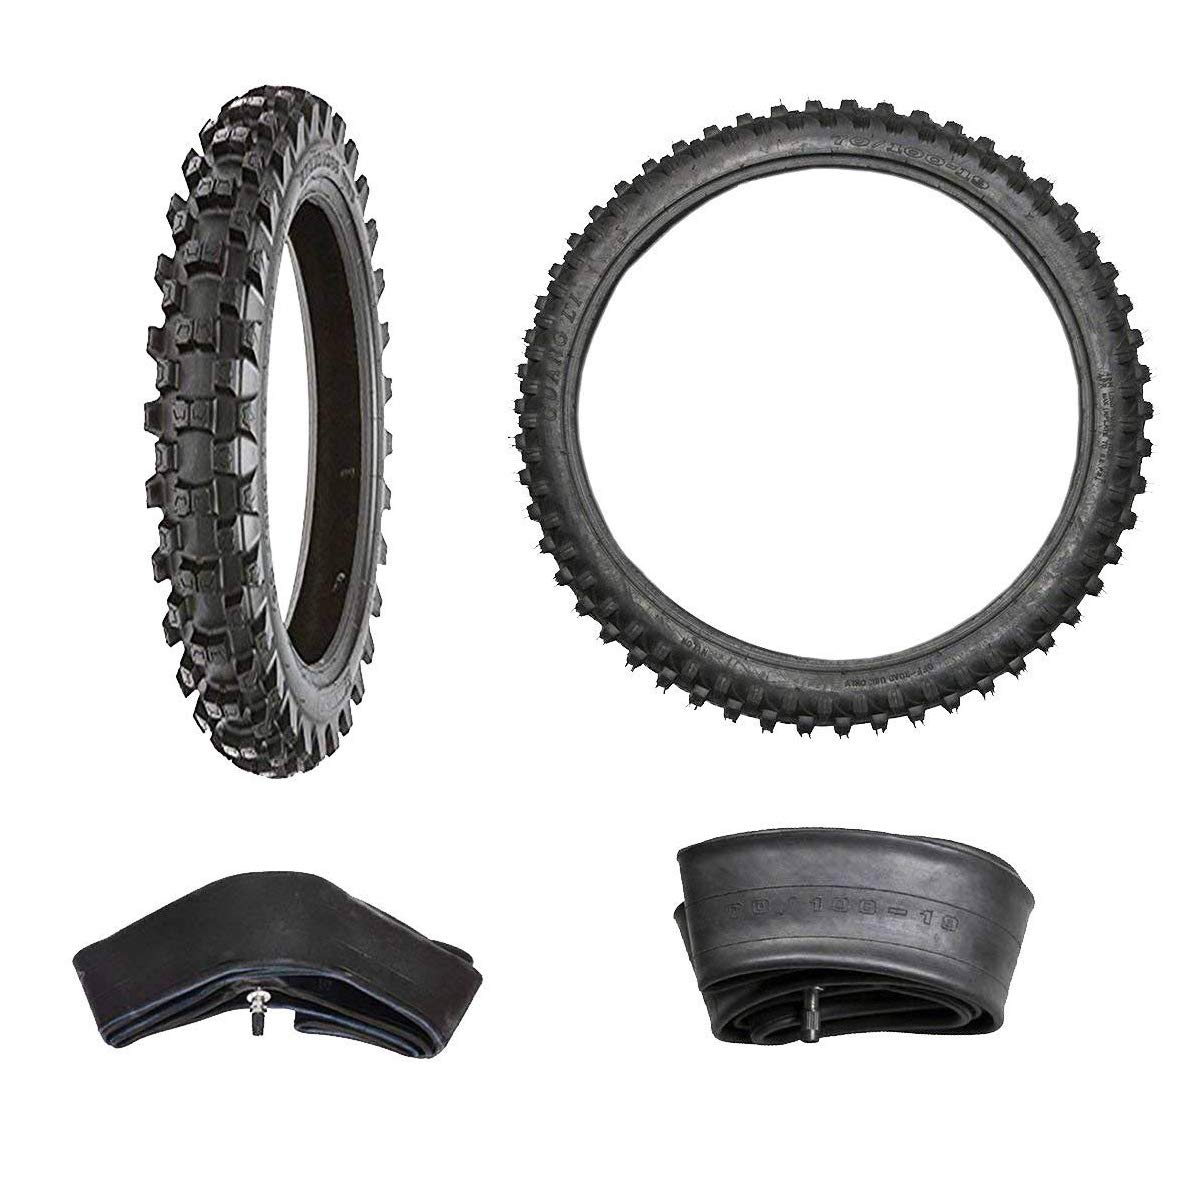 WPHMOTO Set of Four Tire and Inner Tube - Front 70/100-19 & Rear 90/100-16 for Dirt Pit Bikes Off Road